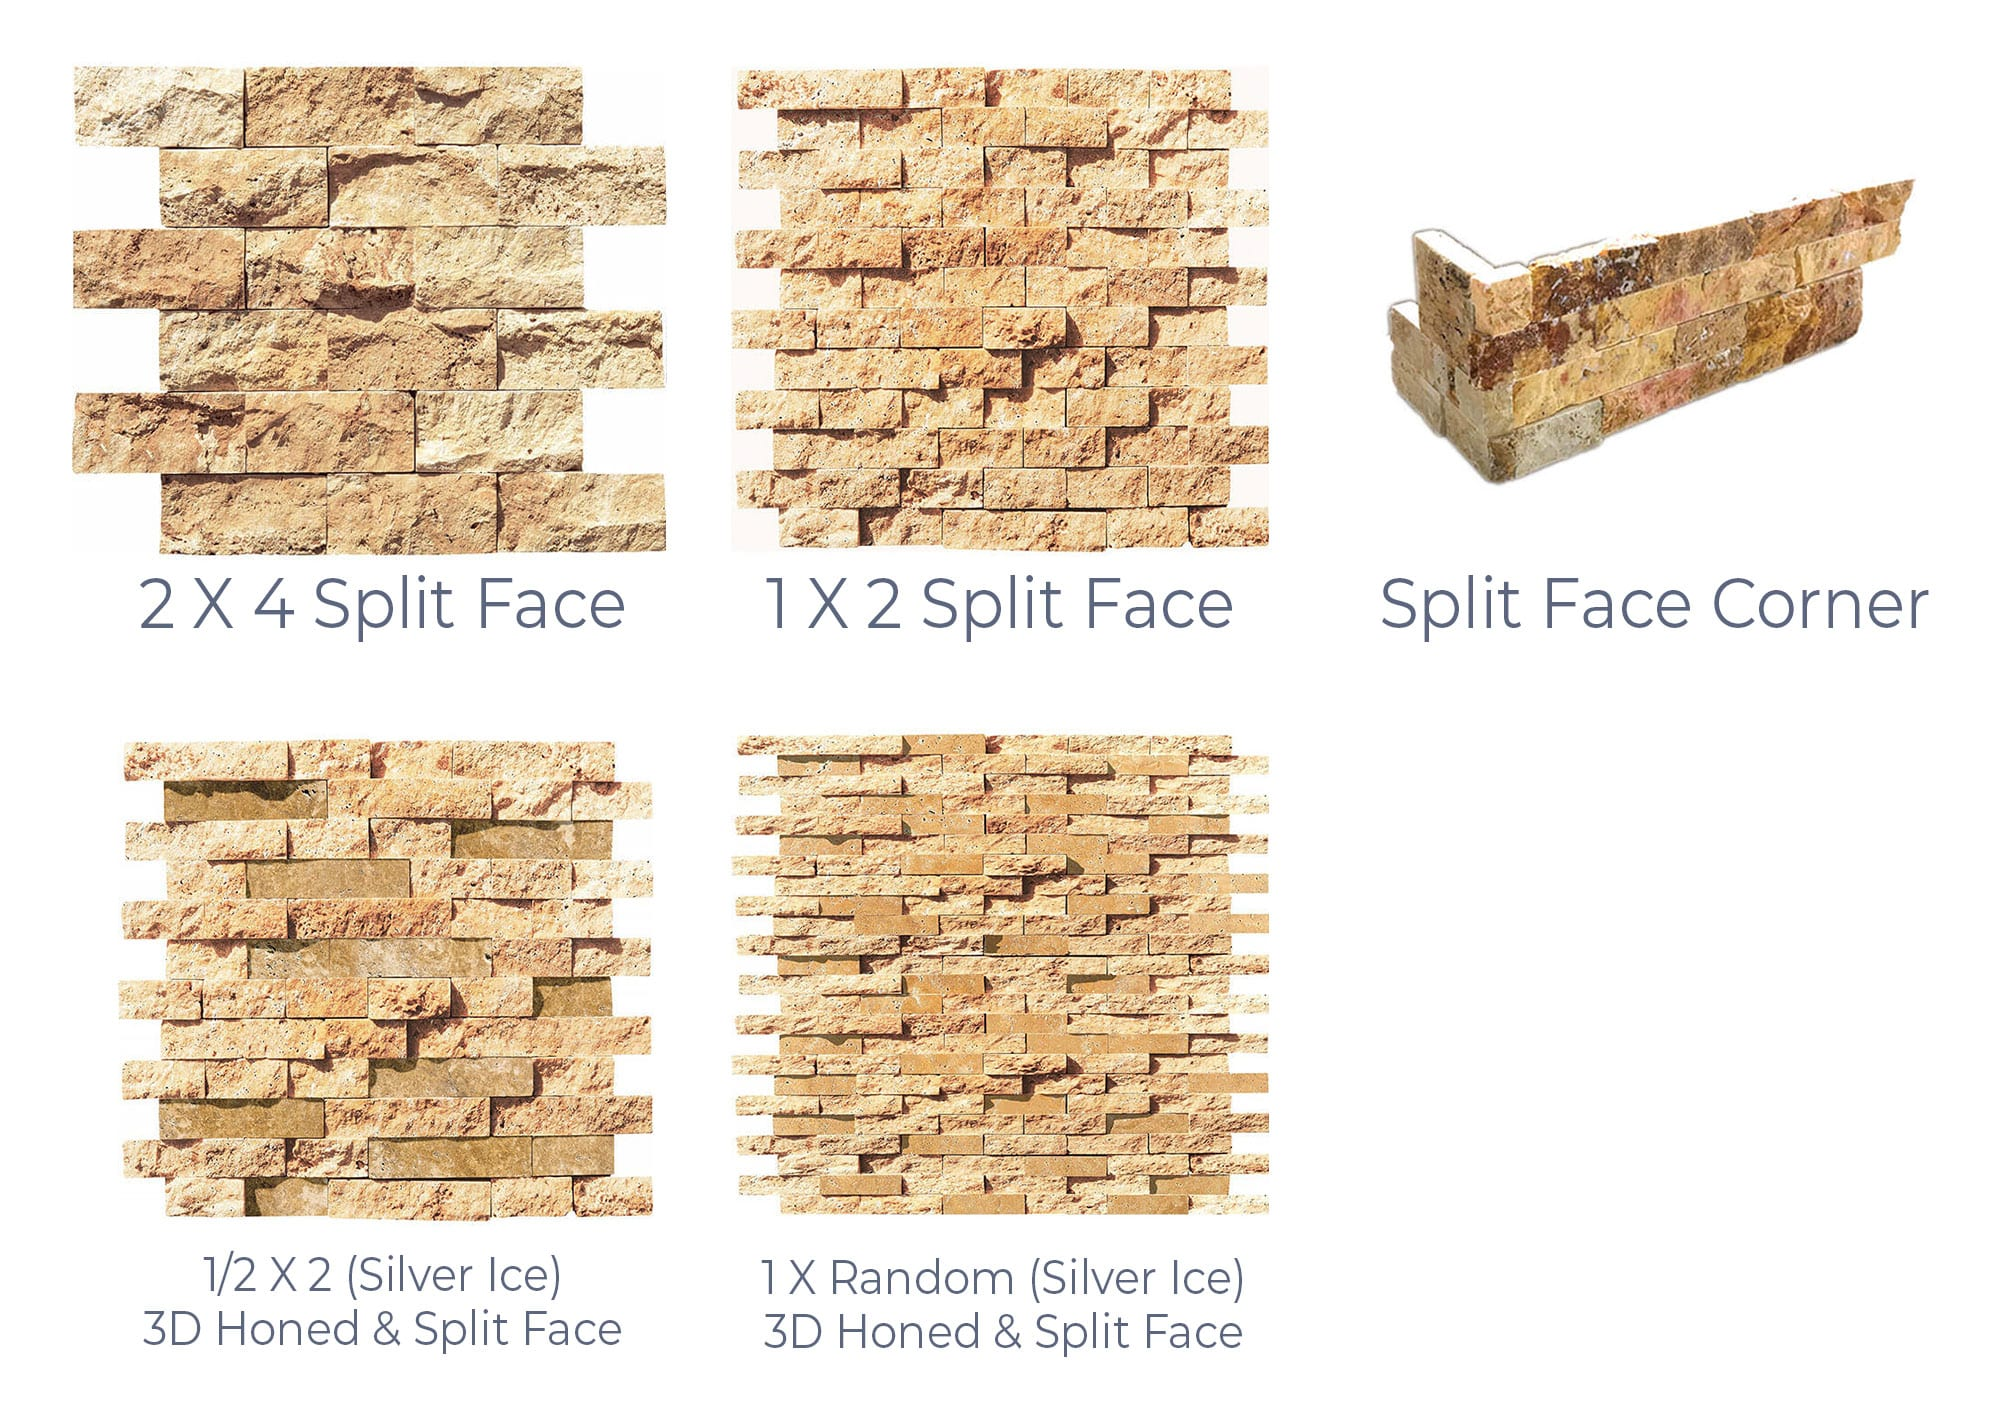 Stoneline-Group-Gold-Marble-Collection-Marble-Veneer-3D-Honed-Split-Face-Corner-Pictures